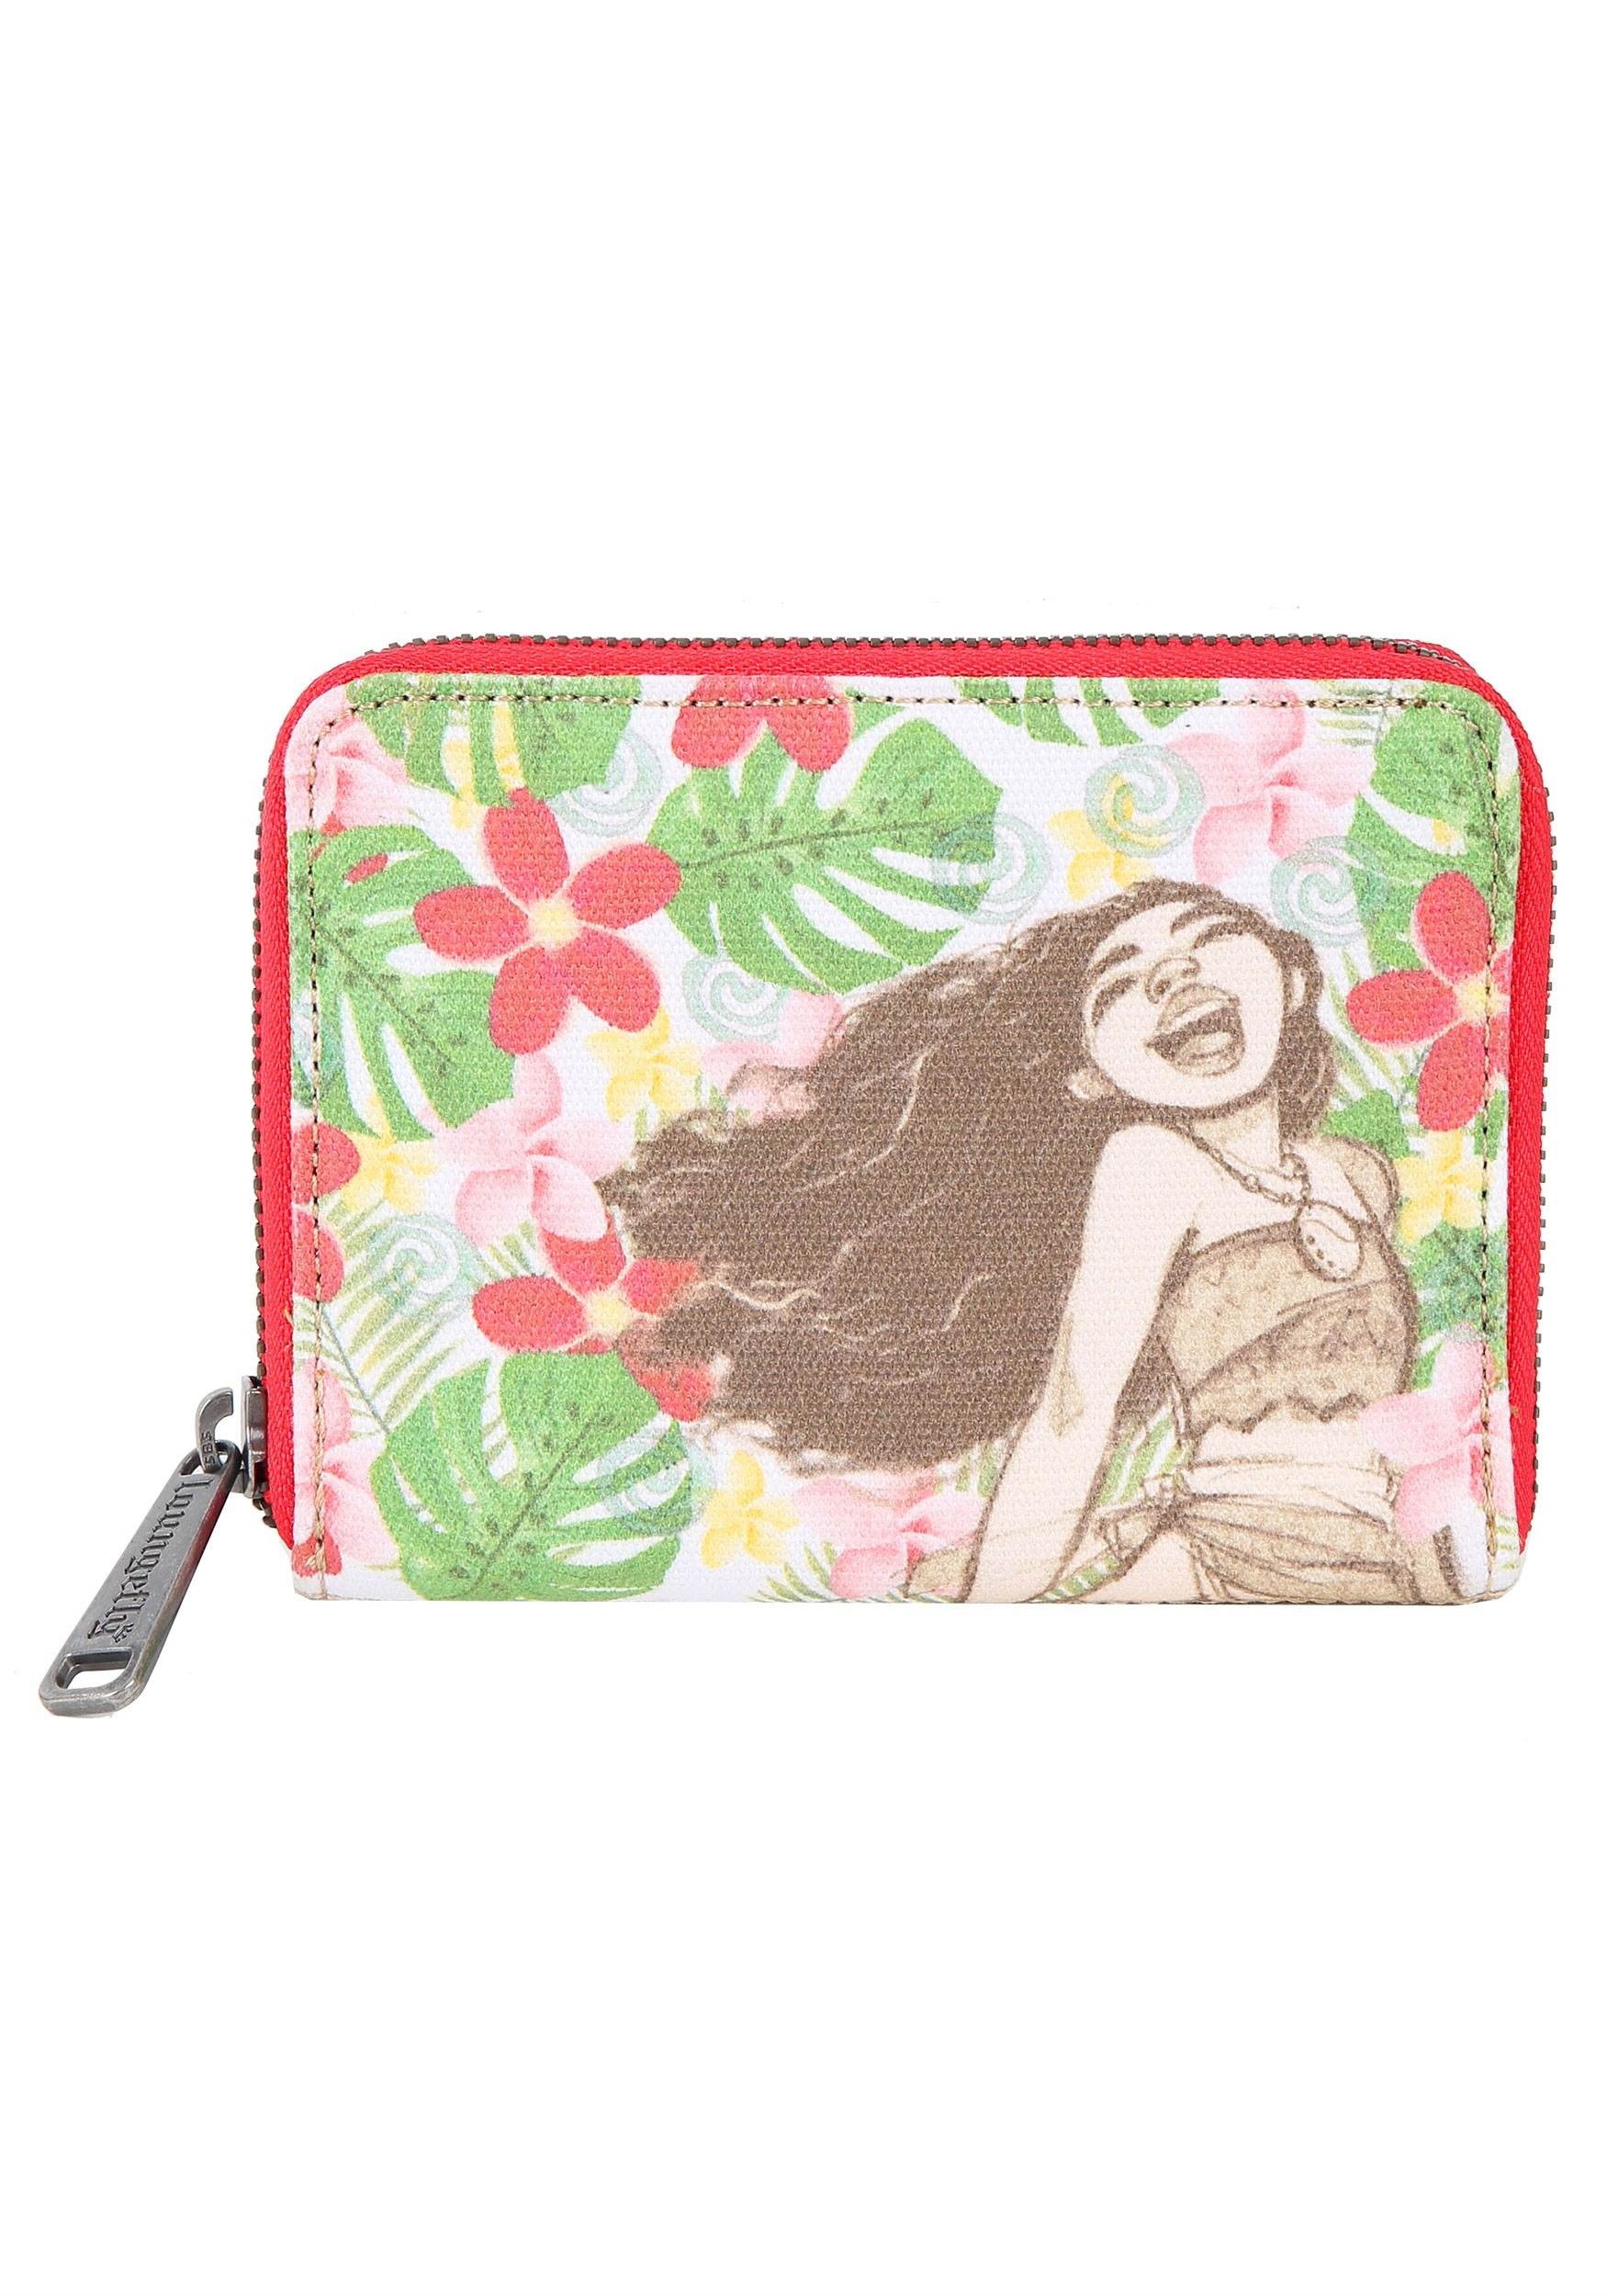 Moana Loungefly Canvas and Burlap Mini Wallet